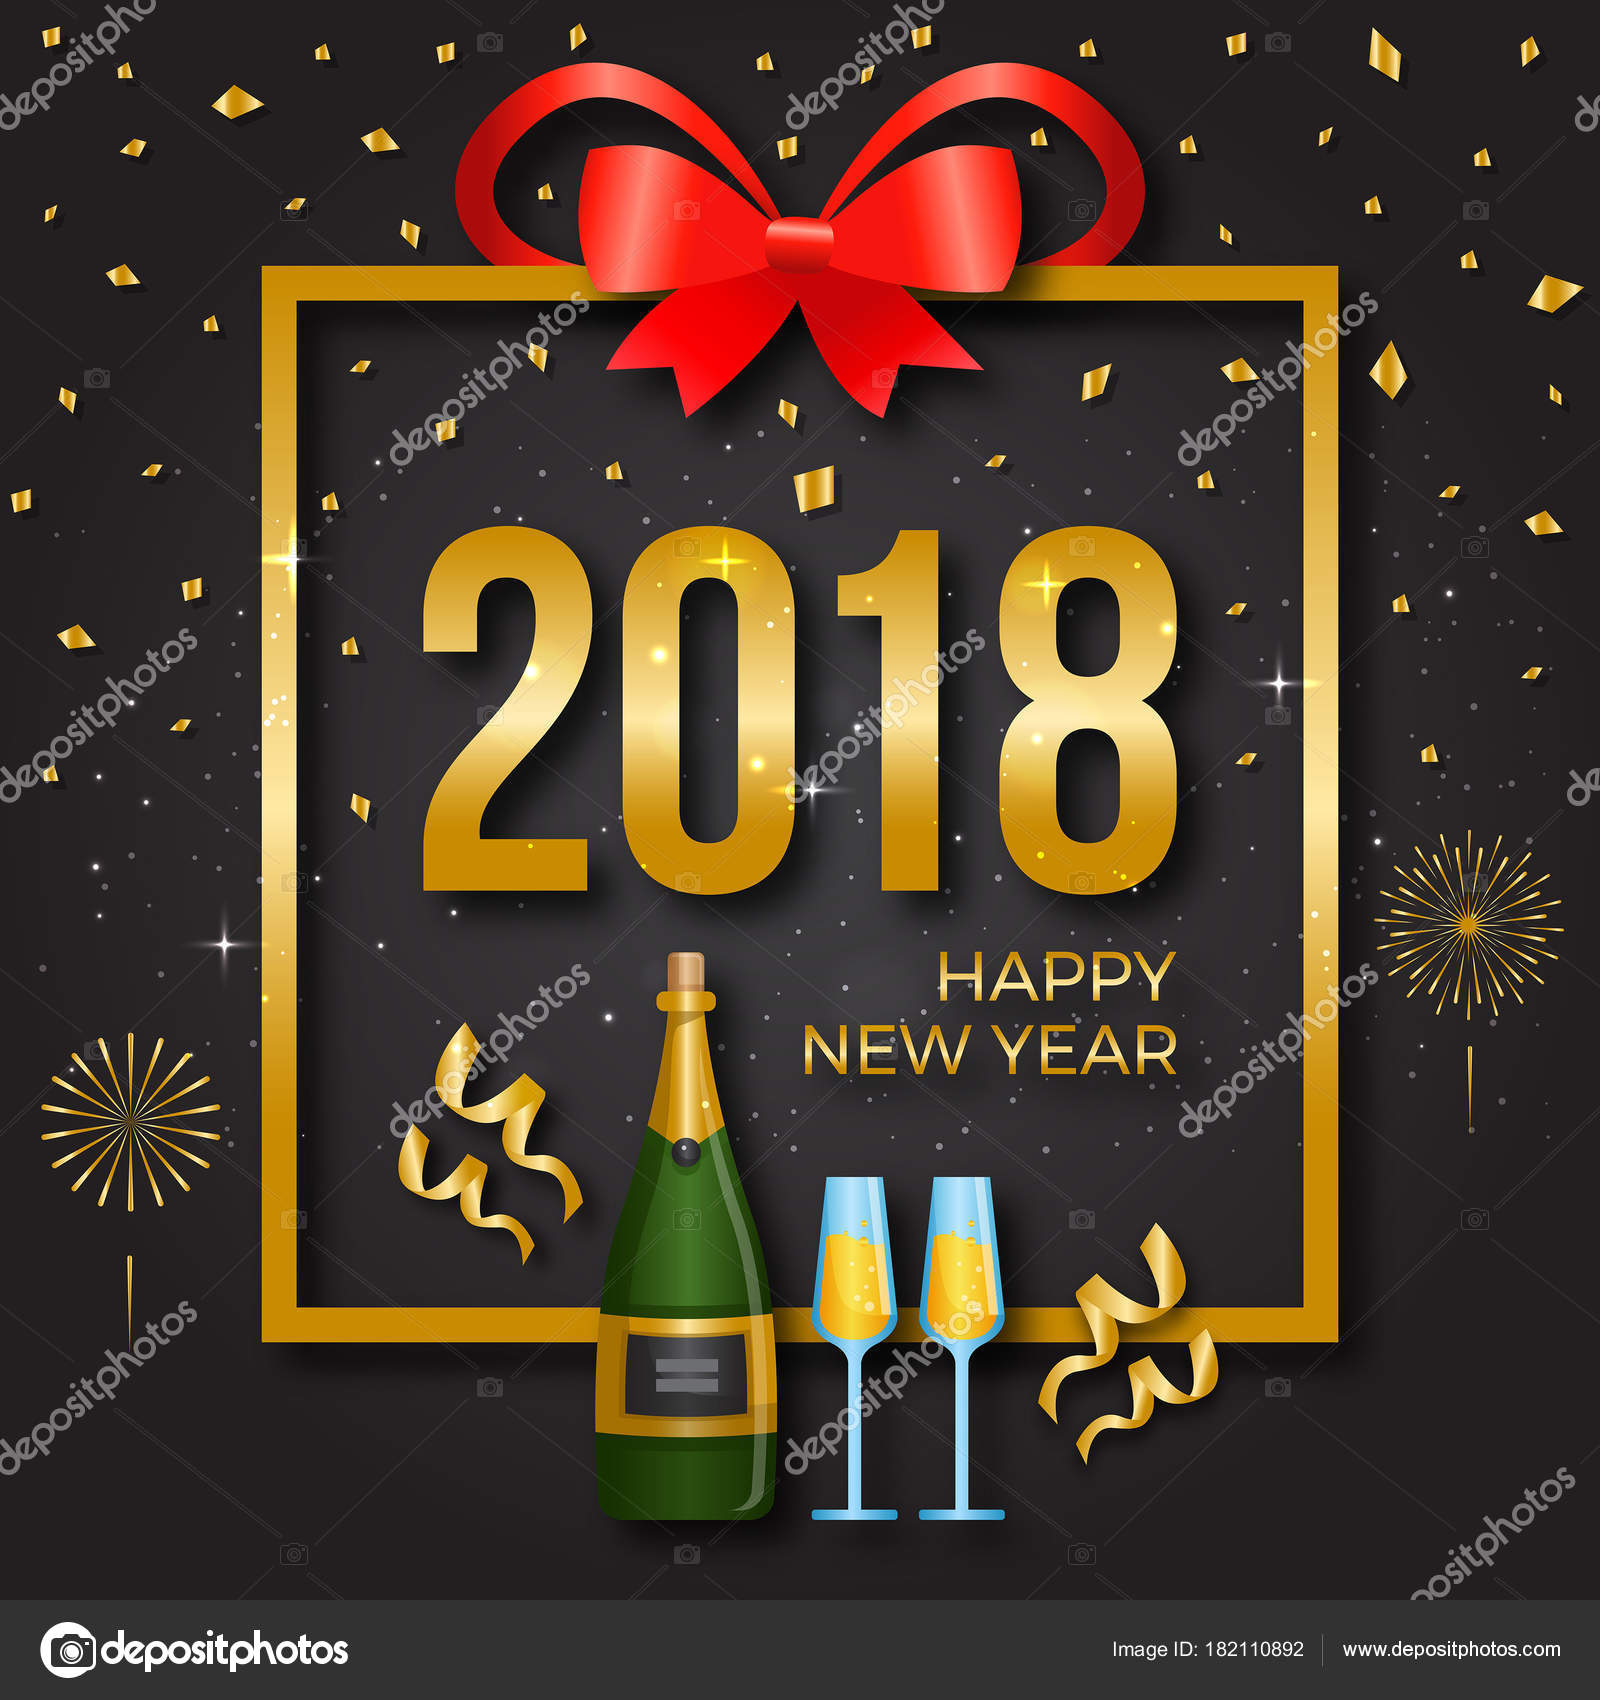 modern happy new year 2018 card illustration suitable for greeting card party invitation and social media vector by naulicreative